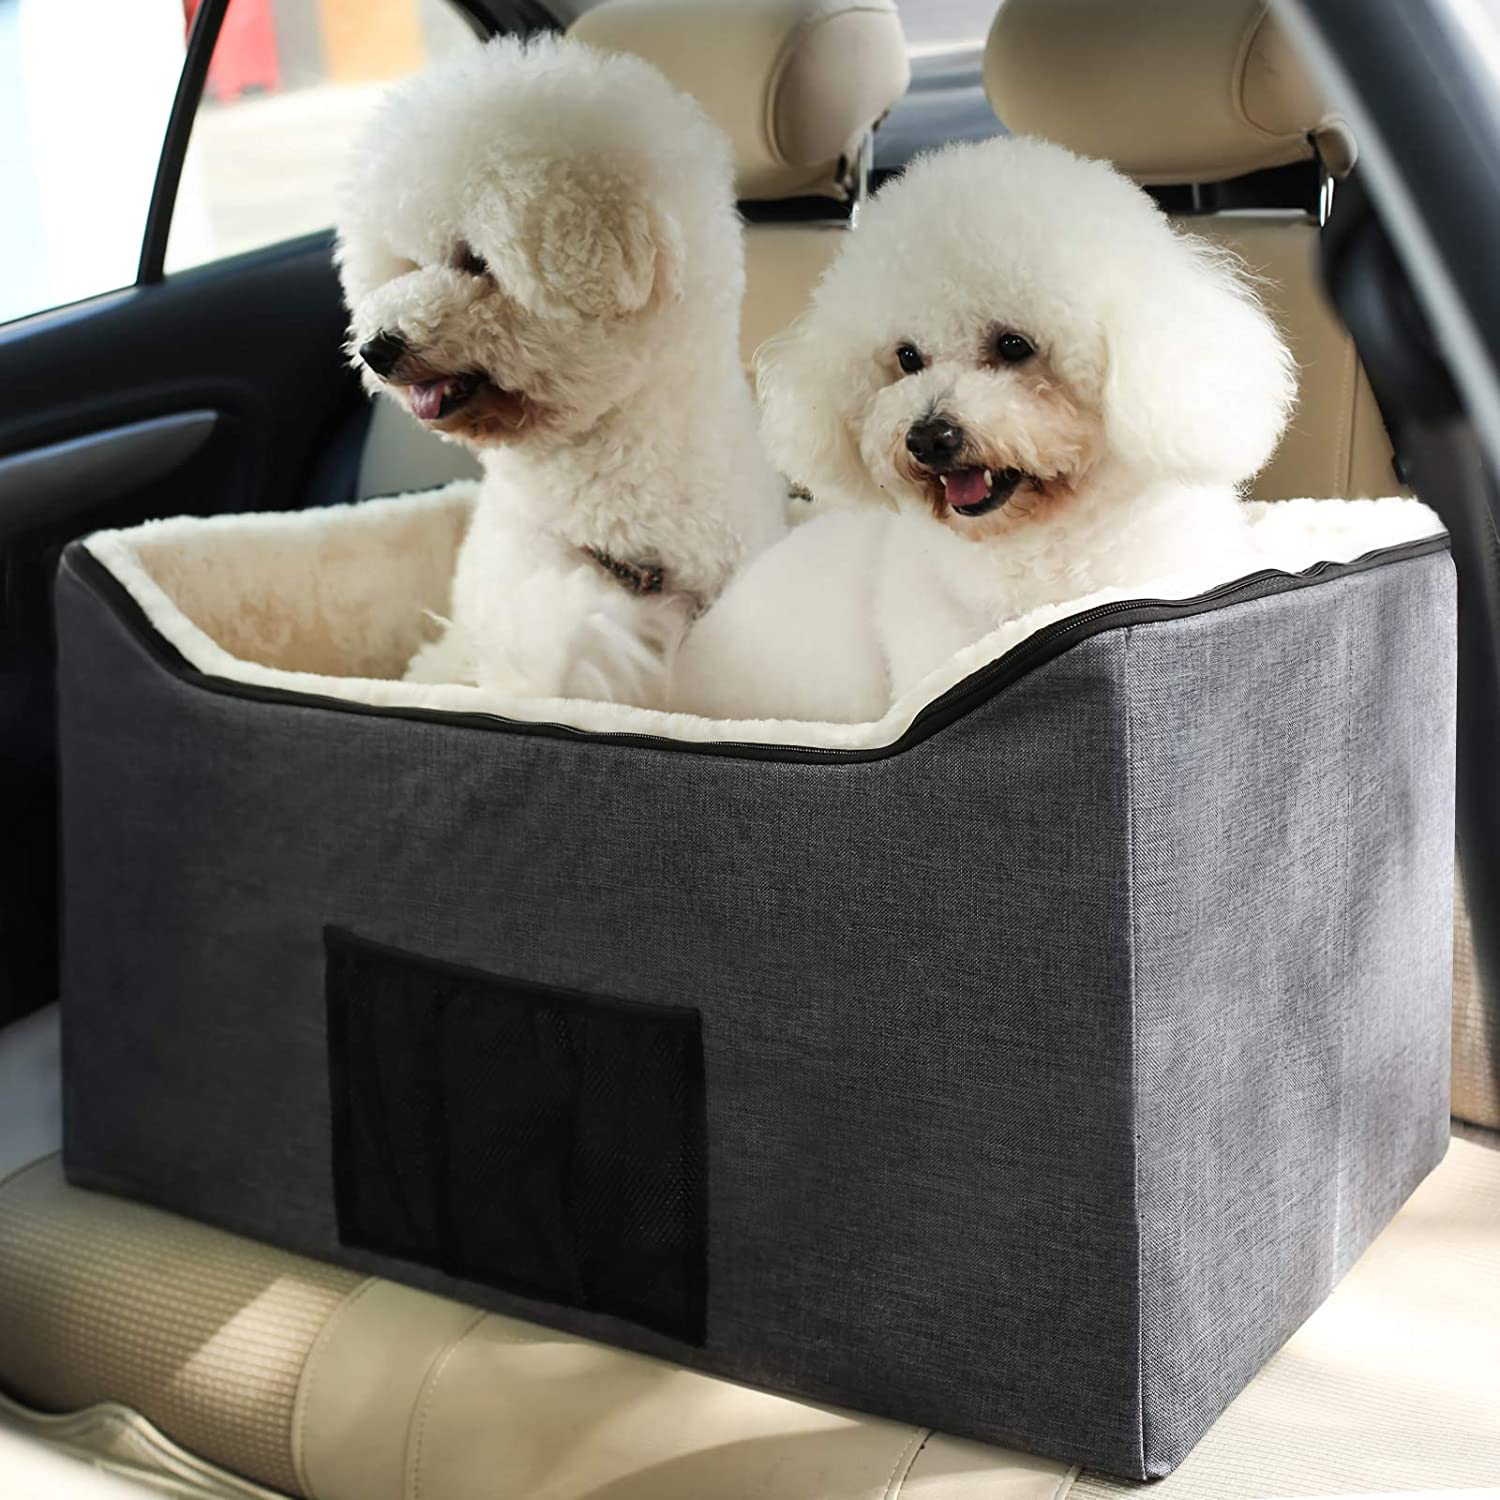 BORKIN Pet Dog Booster Seat, Pet Booster Car Seat for Small Dogs Medium Dogs, Portable Collapsible Dog Car Carrier,Grey,Medium